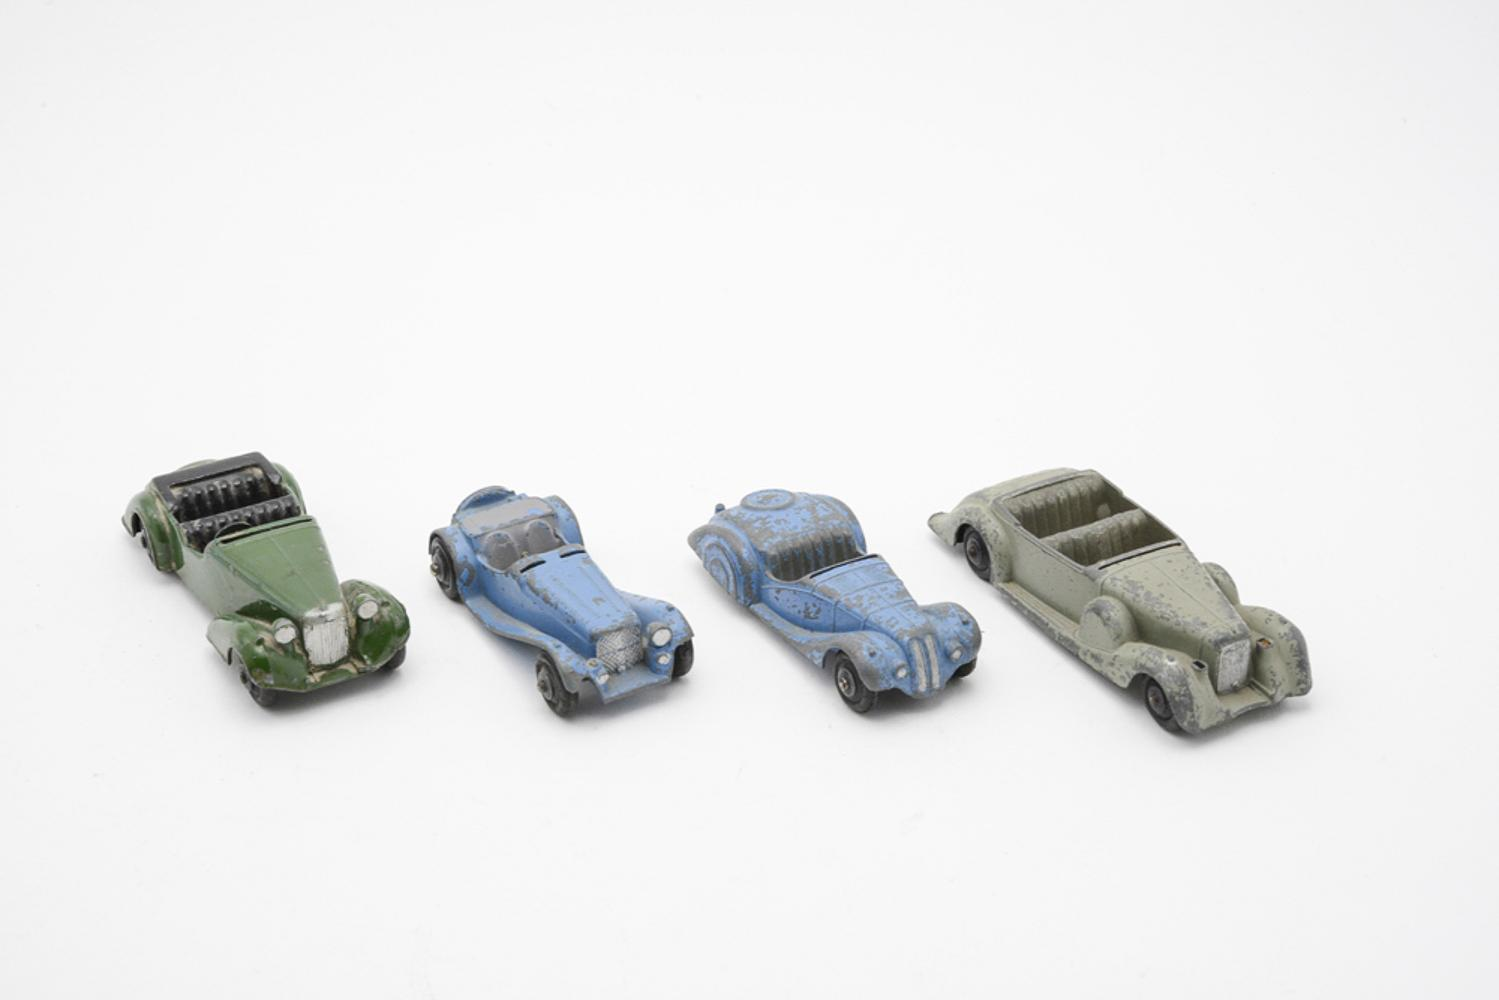 DINKY TOYS, lot of 4 vehicles